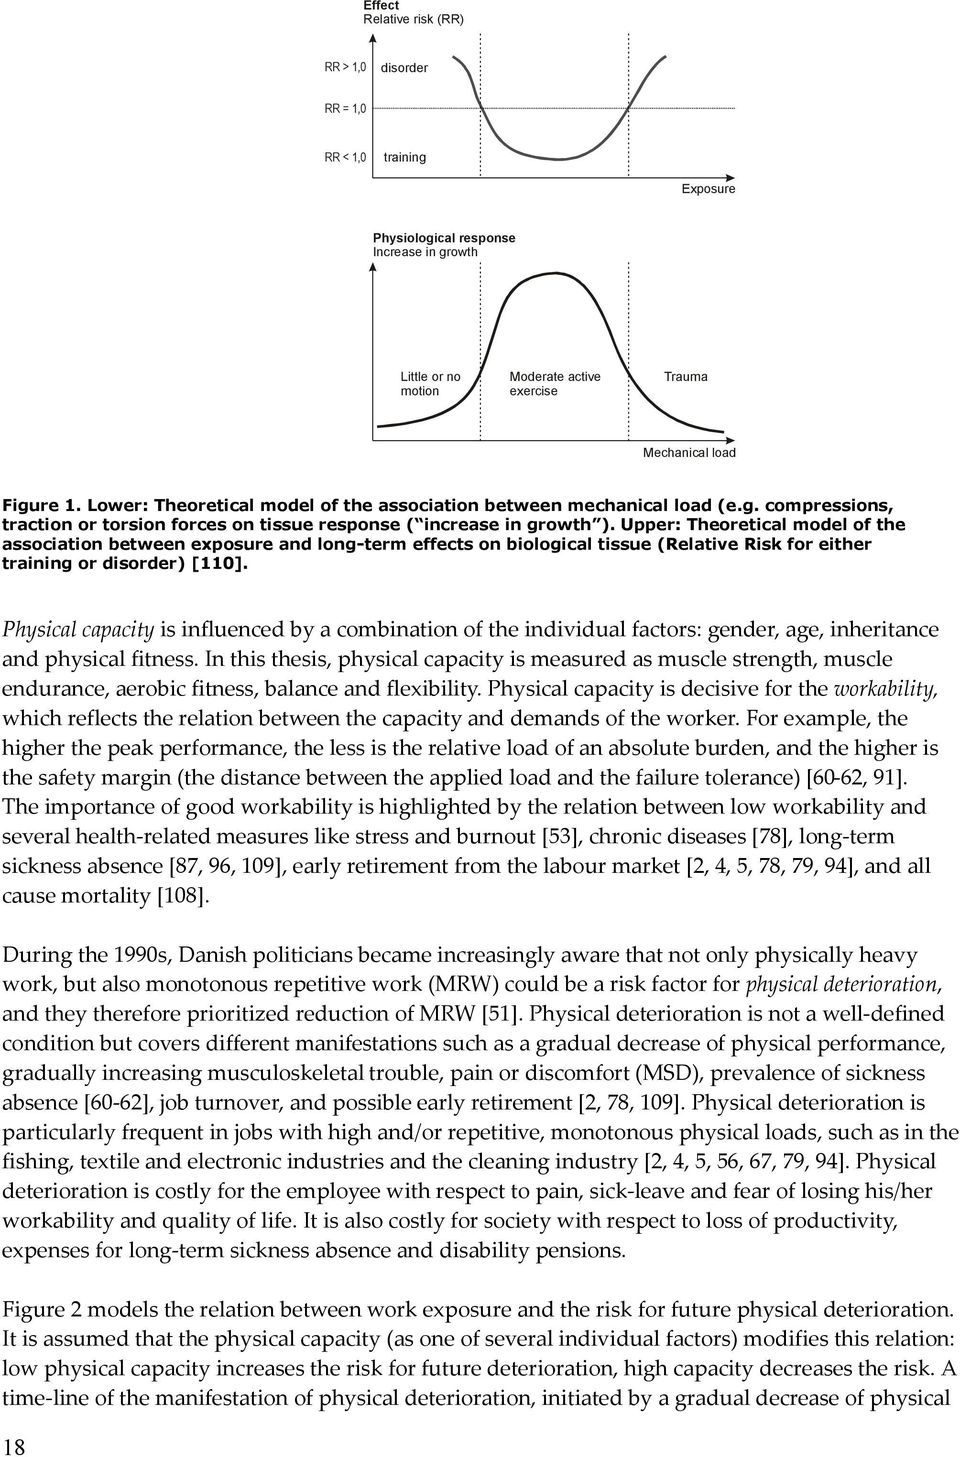 Upper: Theoretical model of the association between exposure and long-term effects on biological tissue (Relative Risk for either training or disorder) [110].